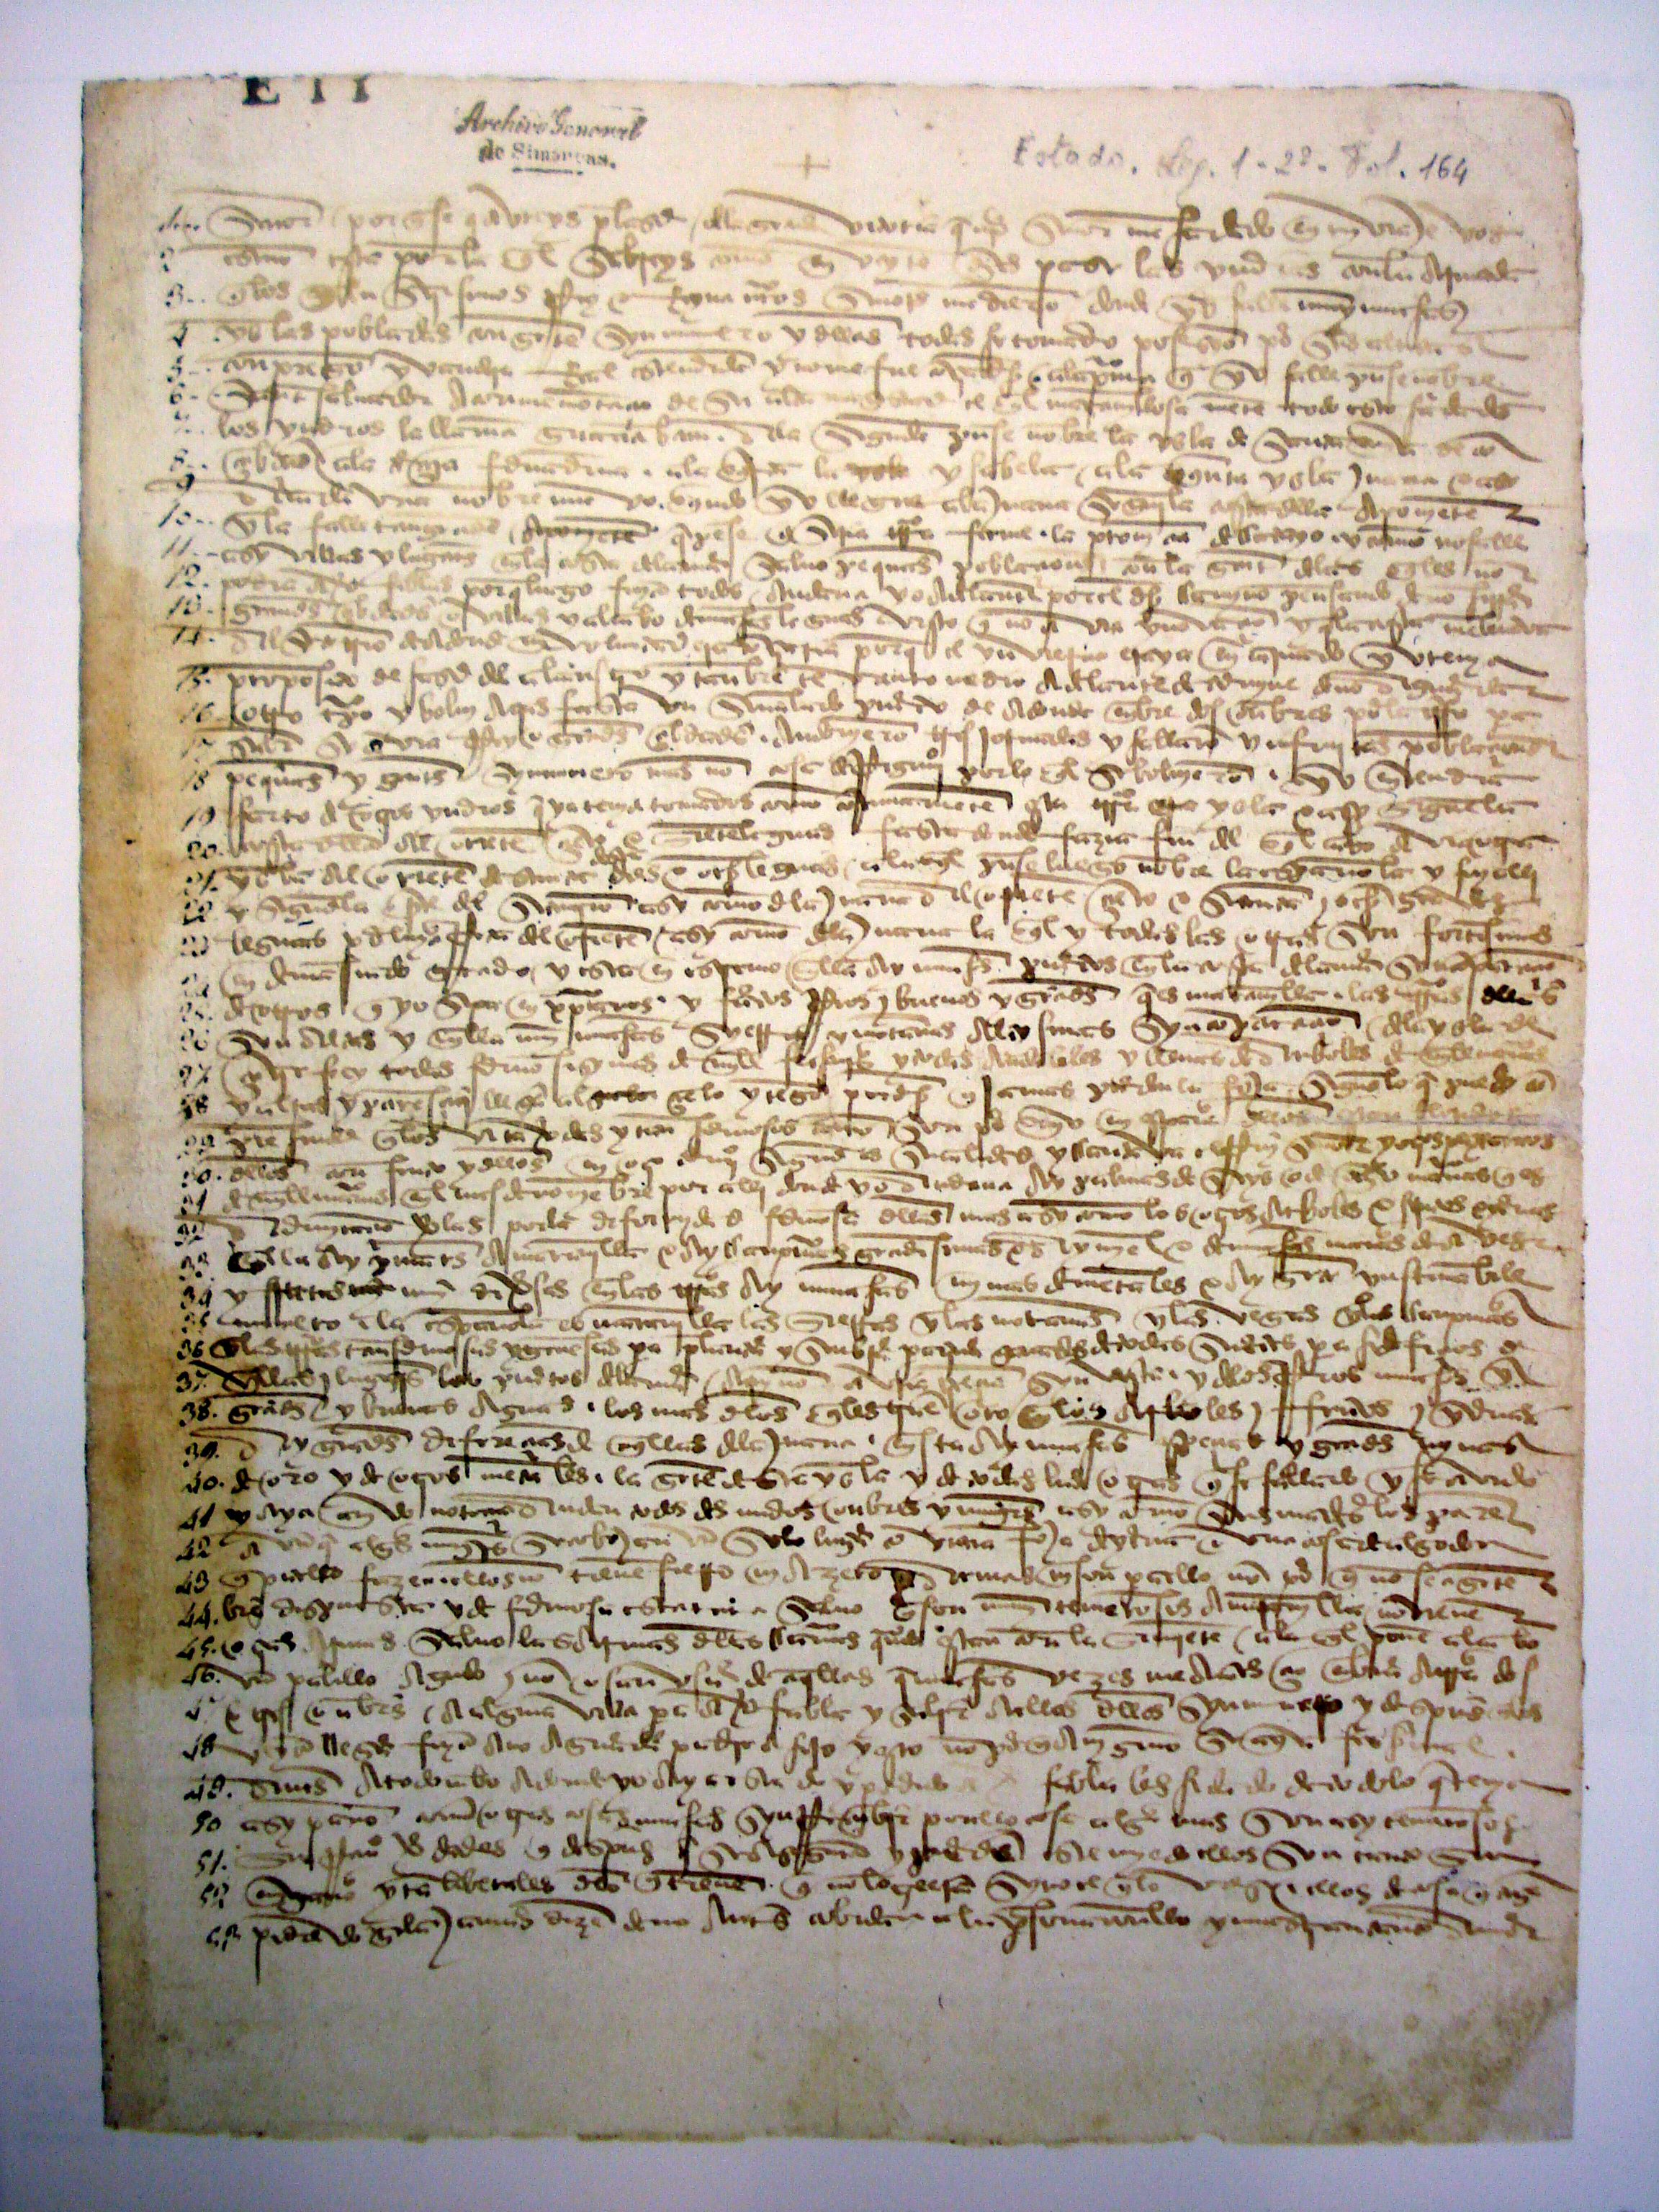 Manuscript version of Christopher Columbus' letter, discovered in 1983.